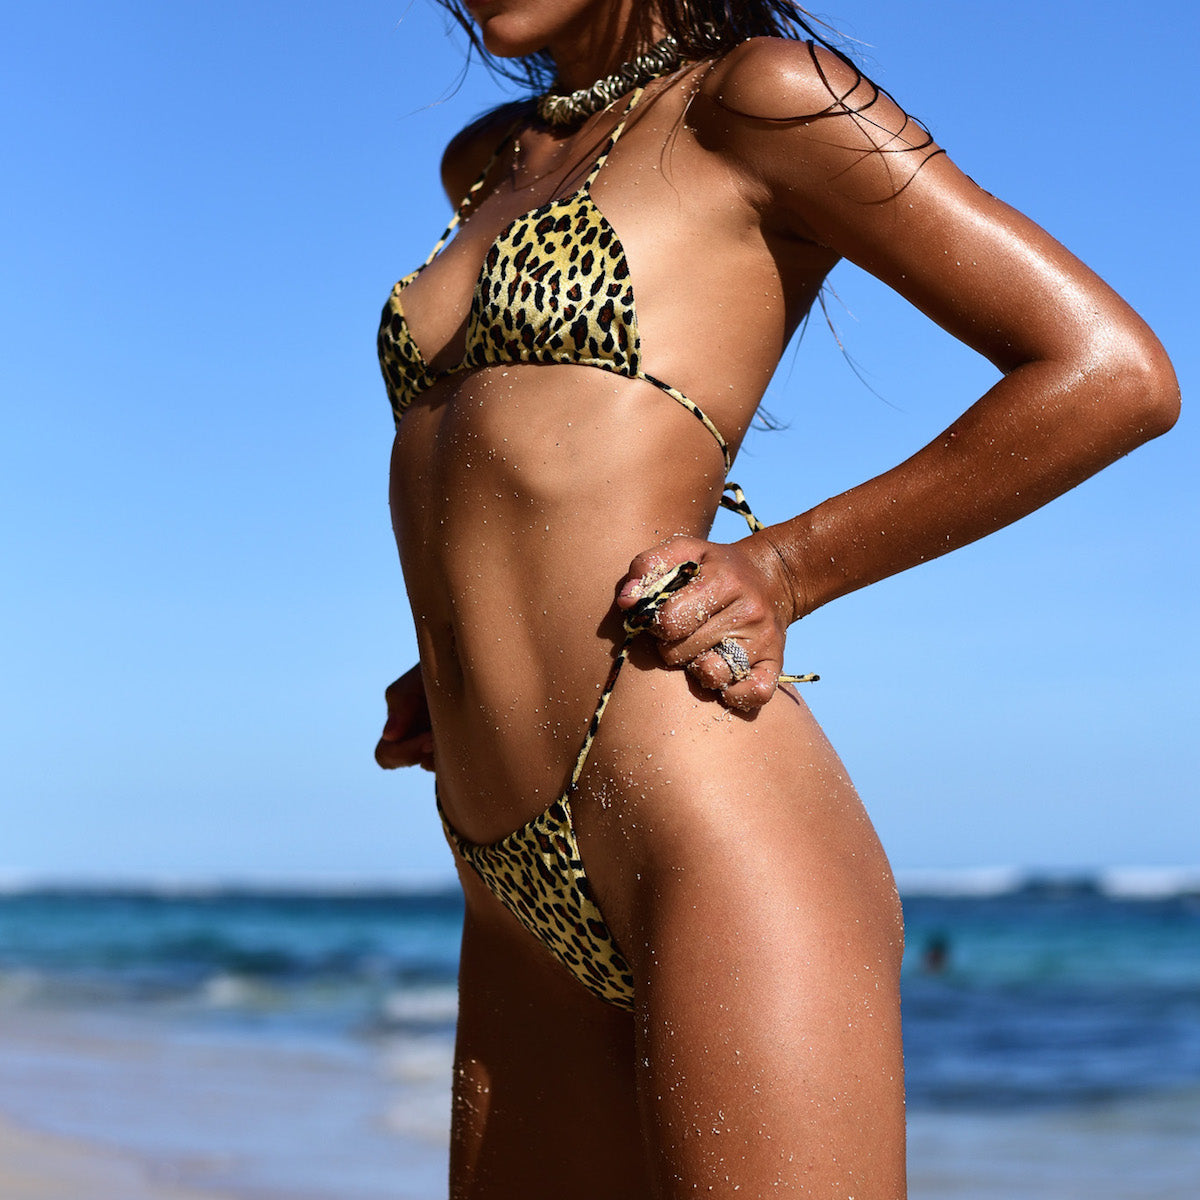 Dangerous Animal Print Bikini